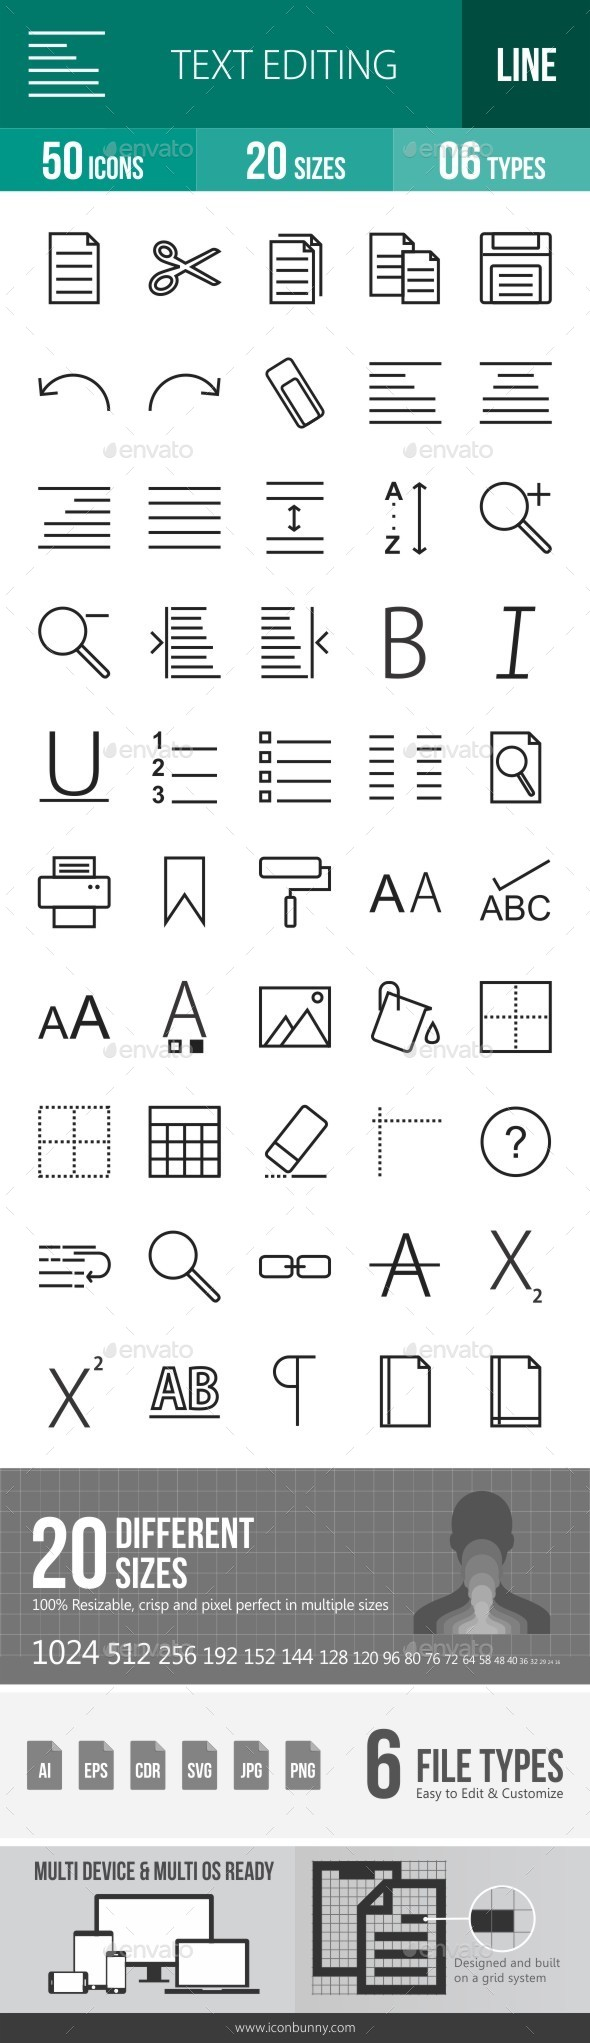 Text Editing Line Icons - Icons